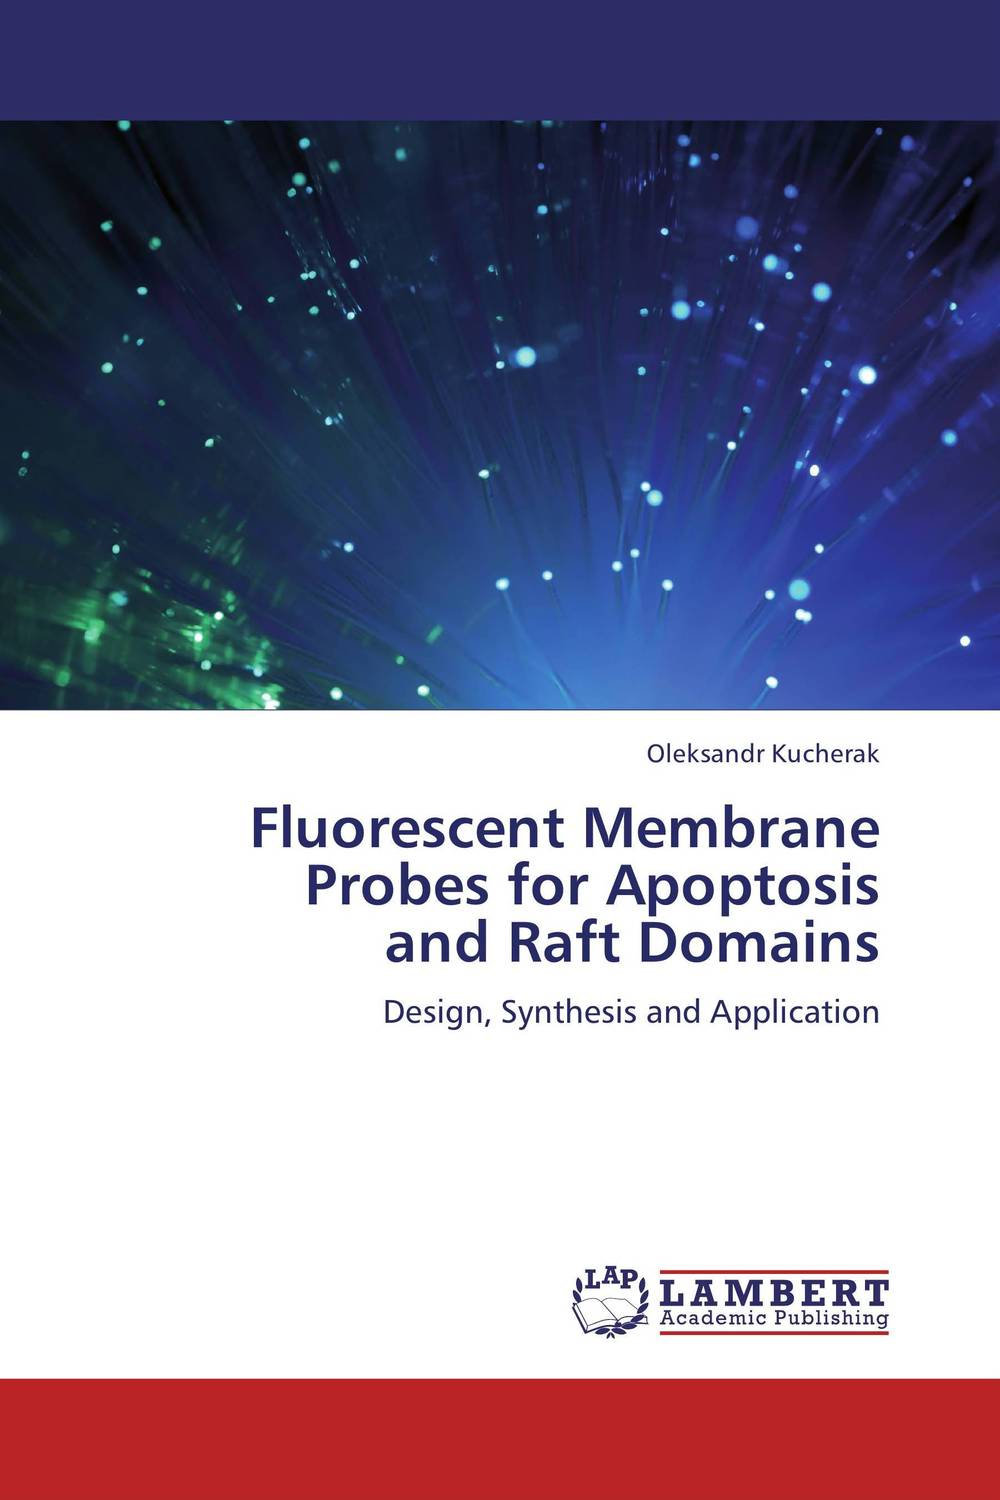 Fluorescent Membrane Probes for Apoptosis and Raft Domains